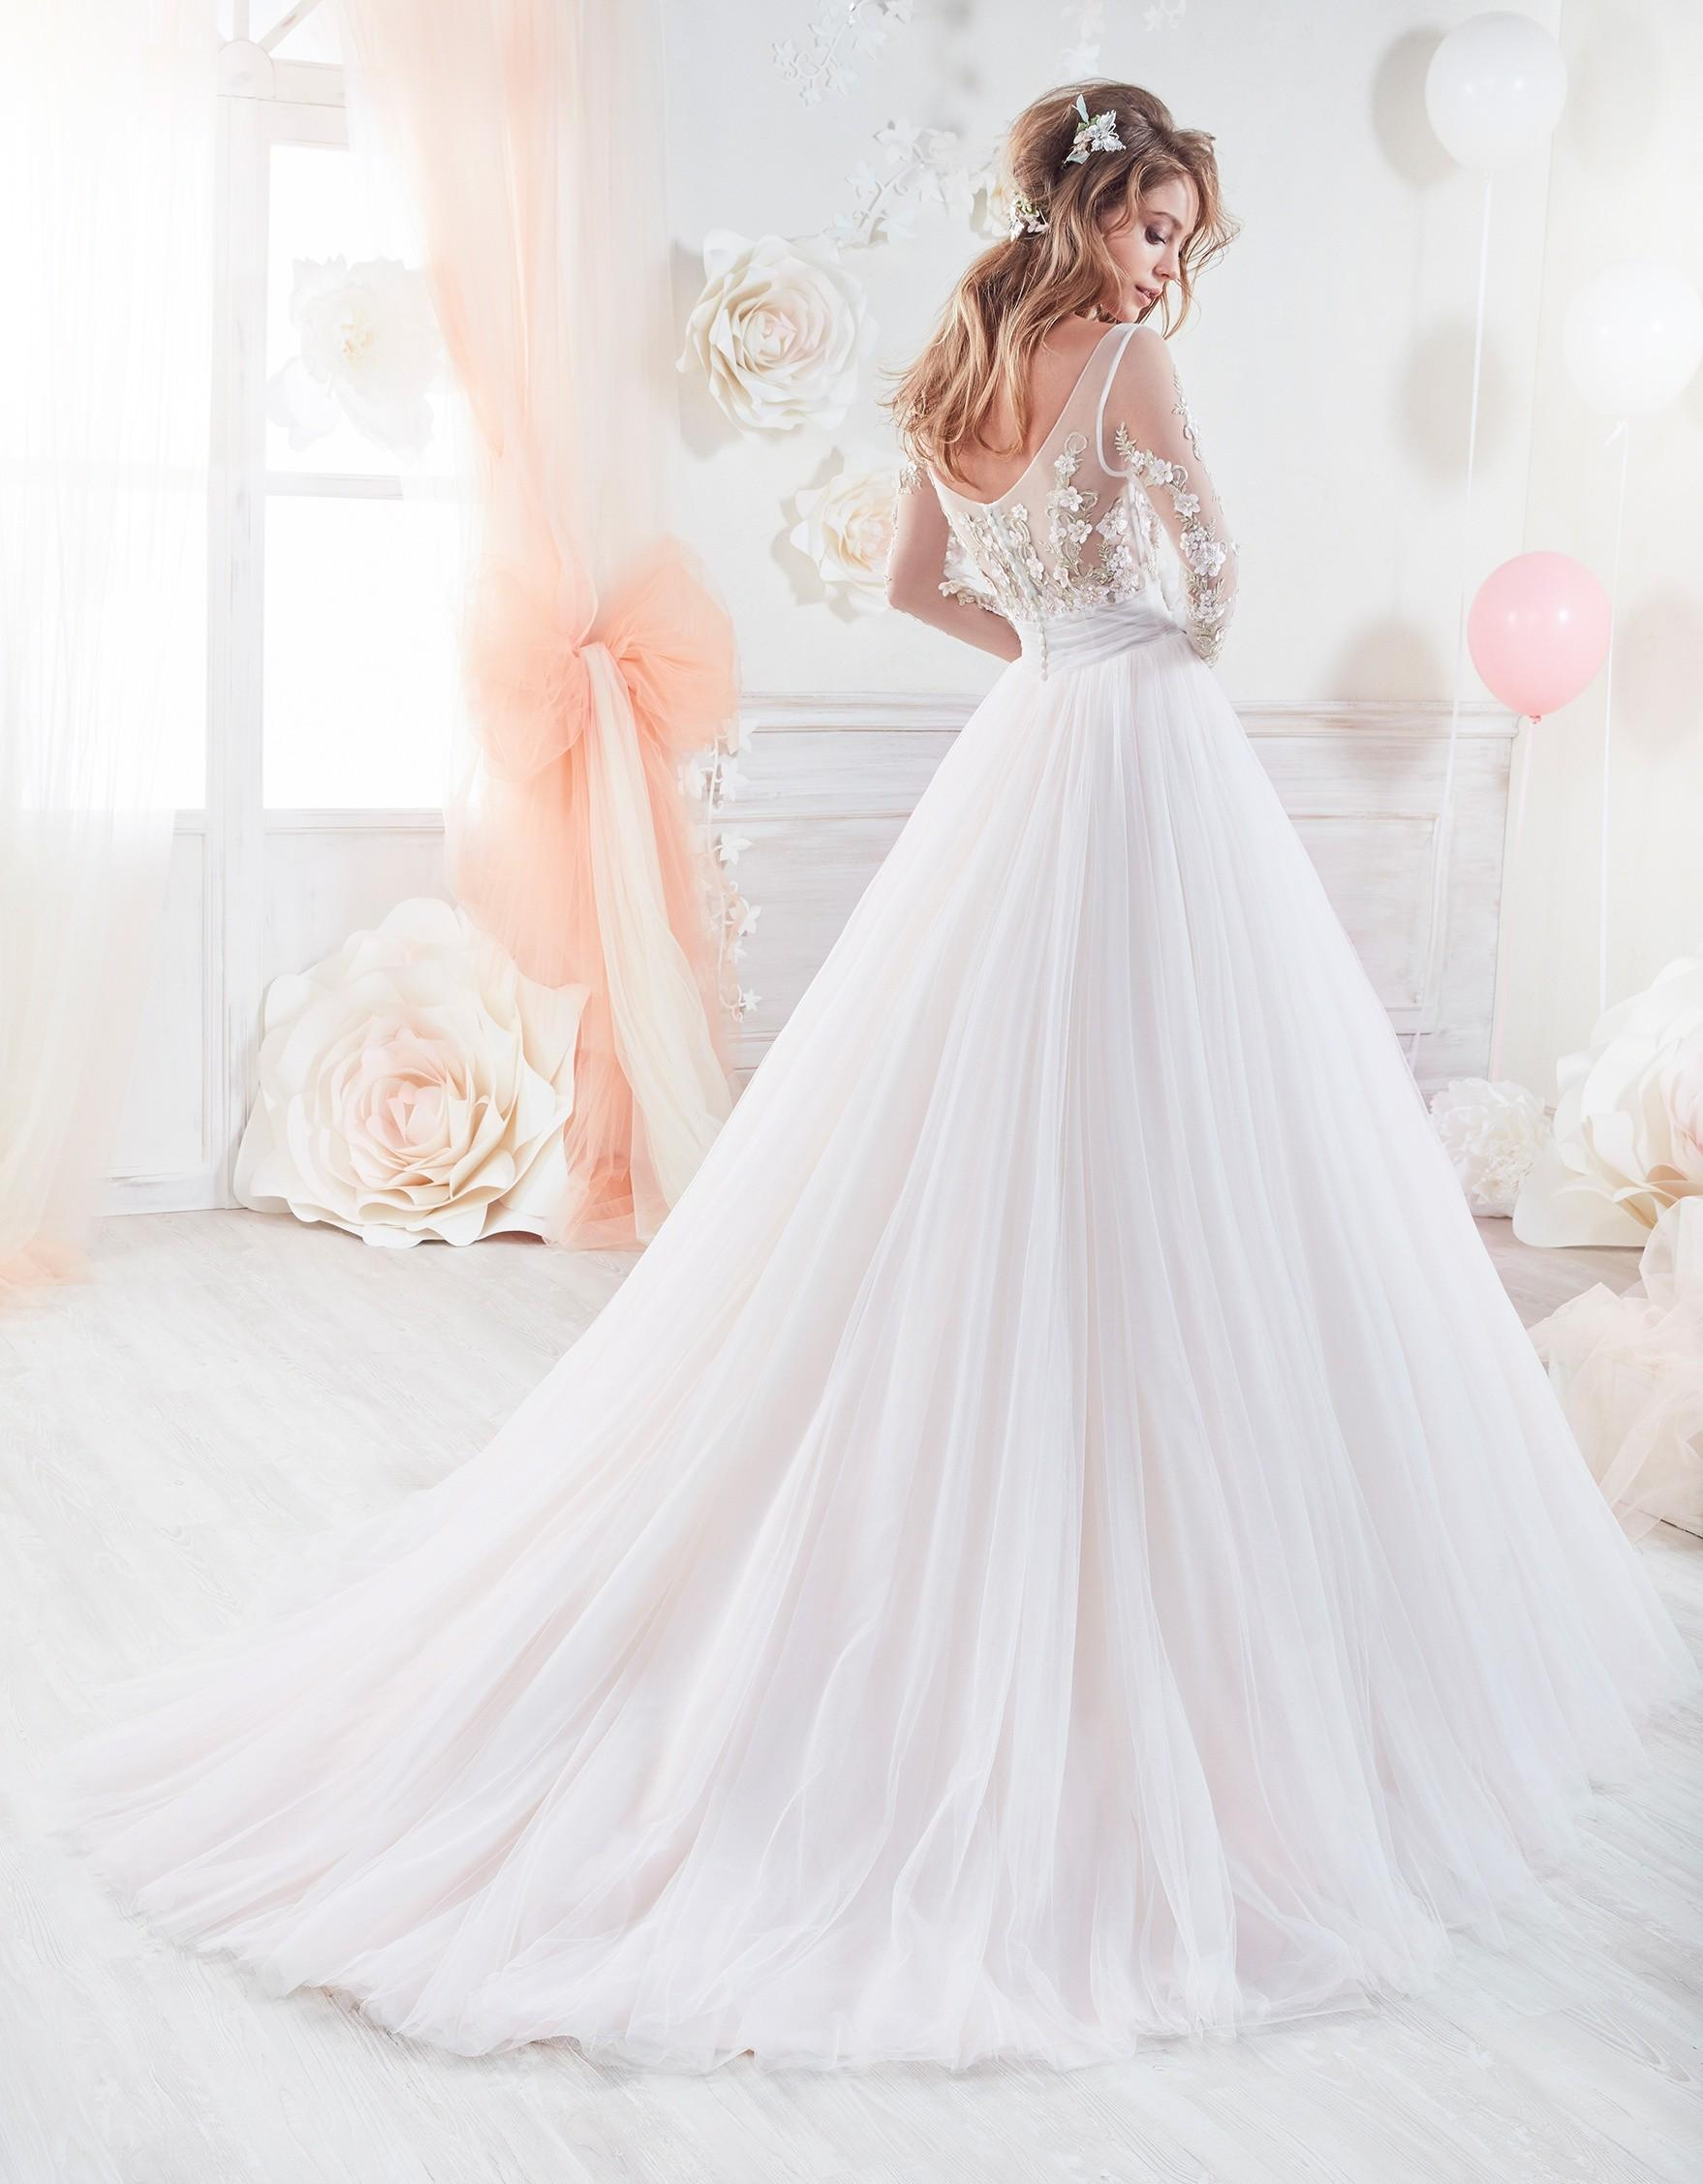 Wedding Dress Colet 232 Nicole Fashion Group